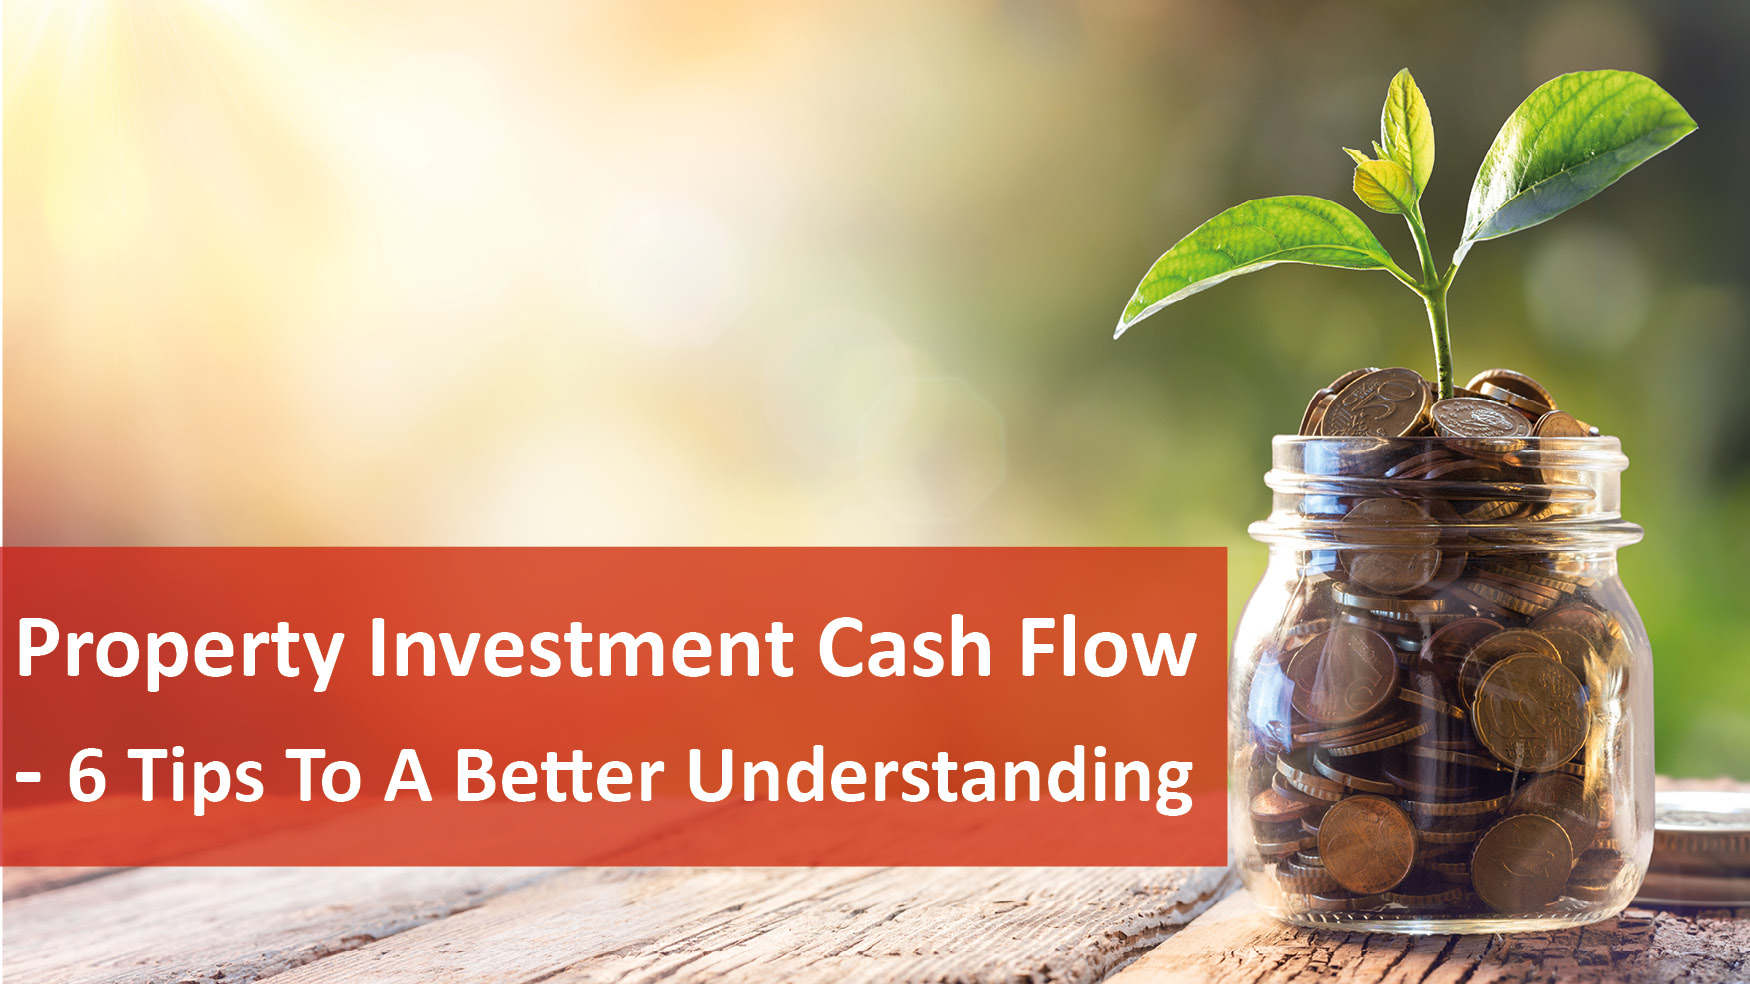 We Love Rentals 6 Tips to Understand Property Investment Cash Flow